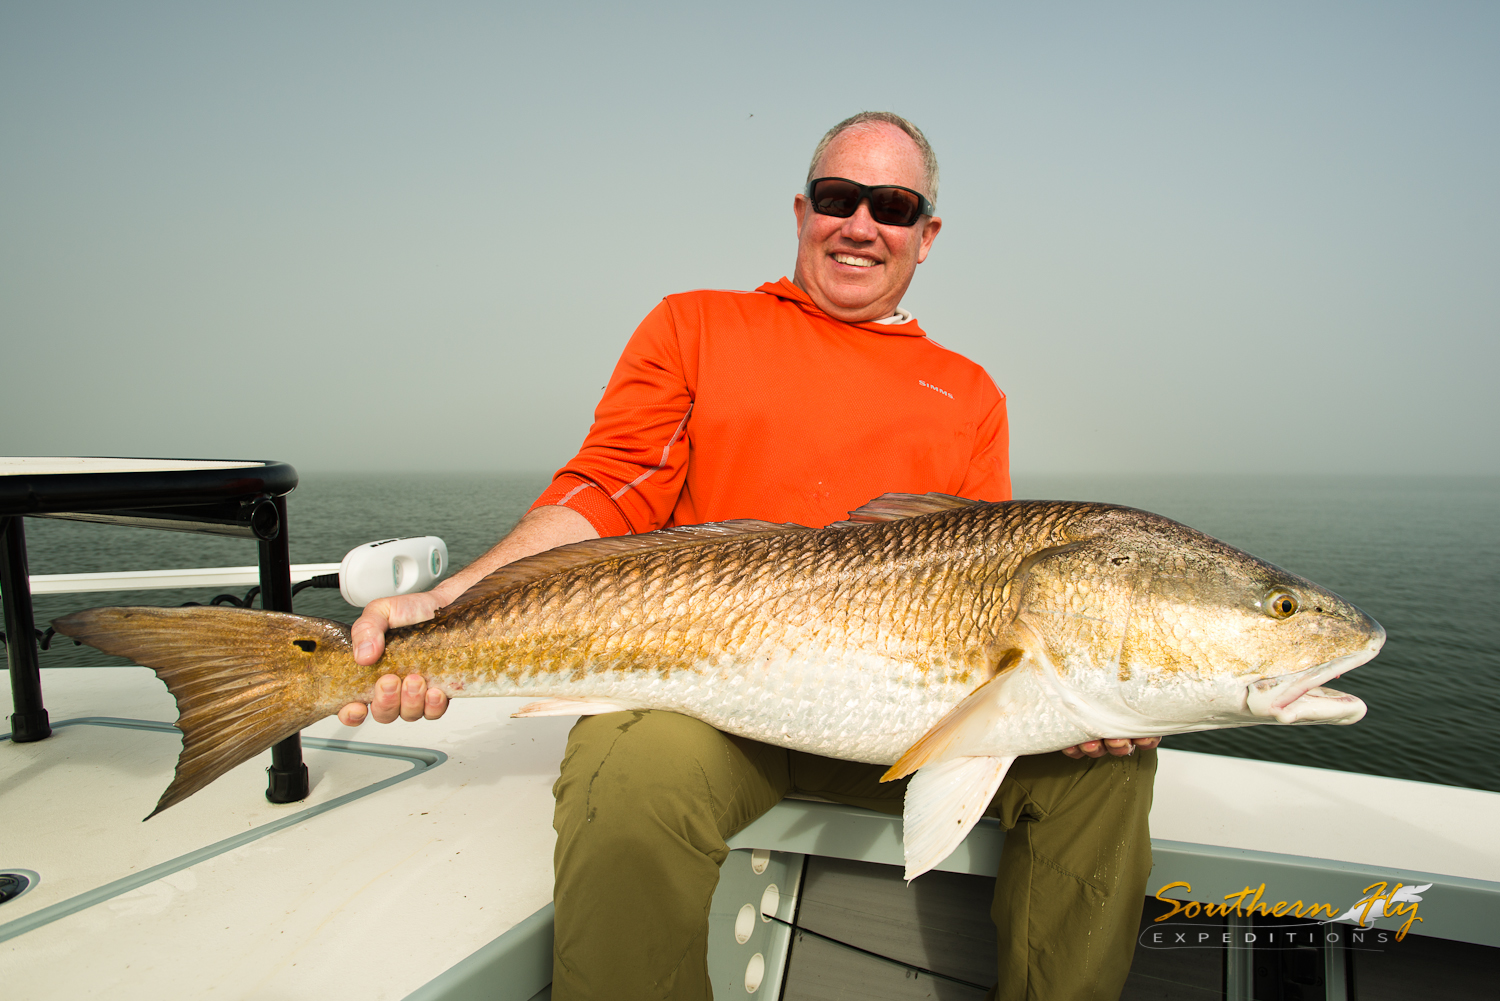 Fly fishing for redfish new orleans louisiana with fisherman captain brandon keck and southern fly expeditions